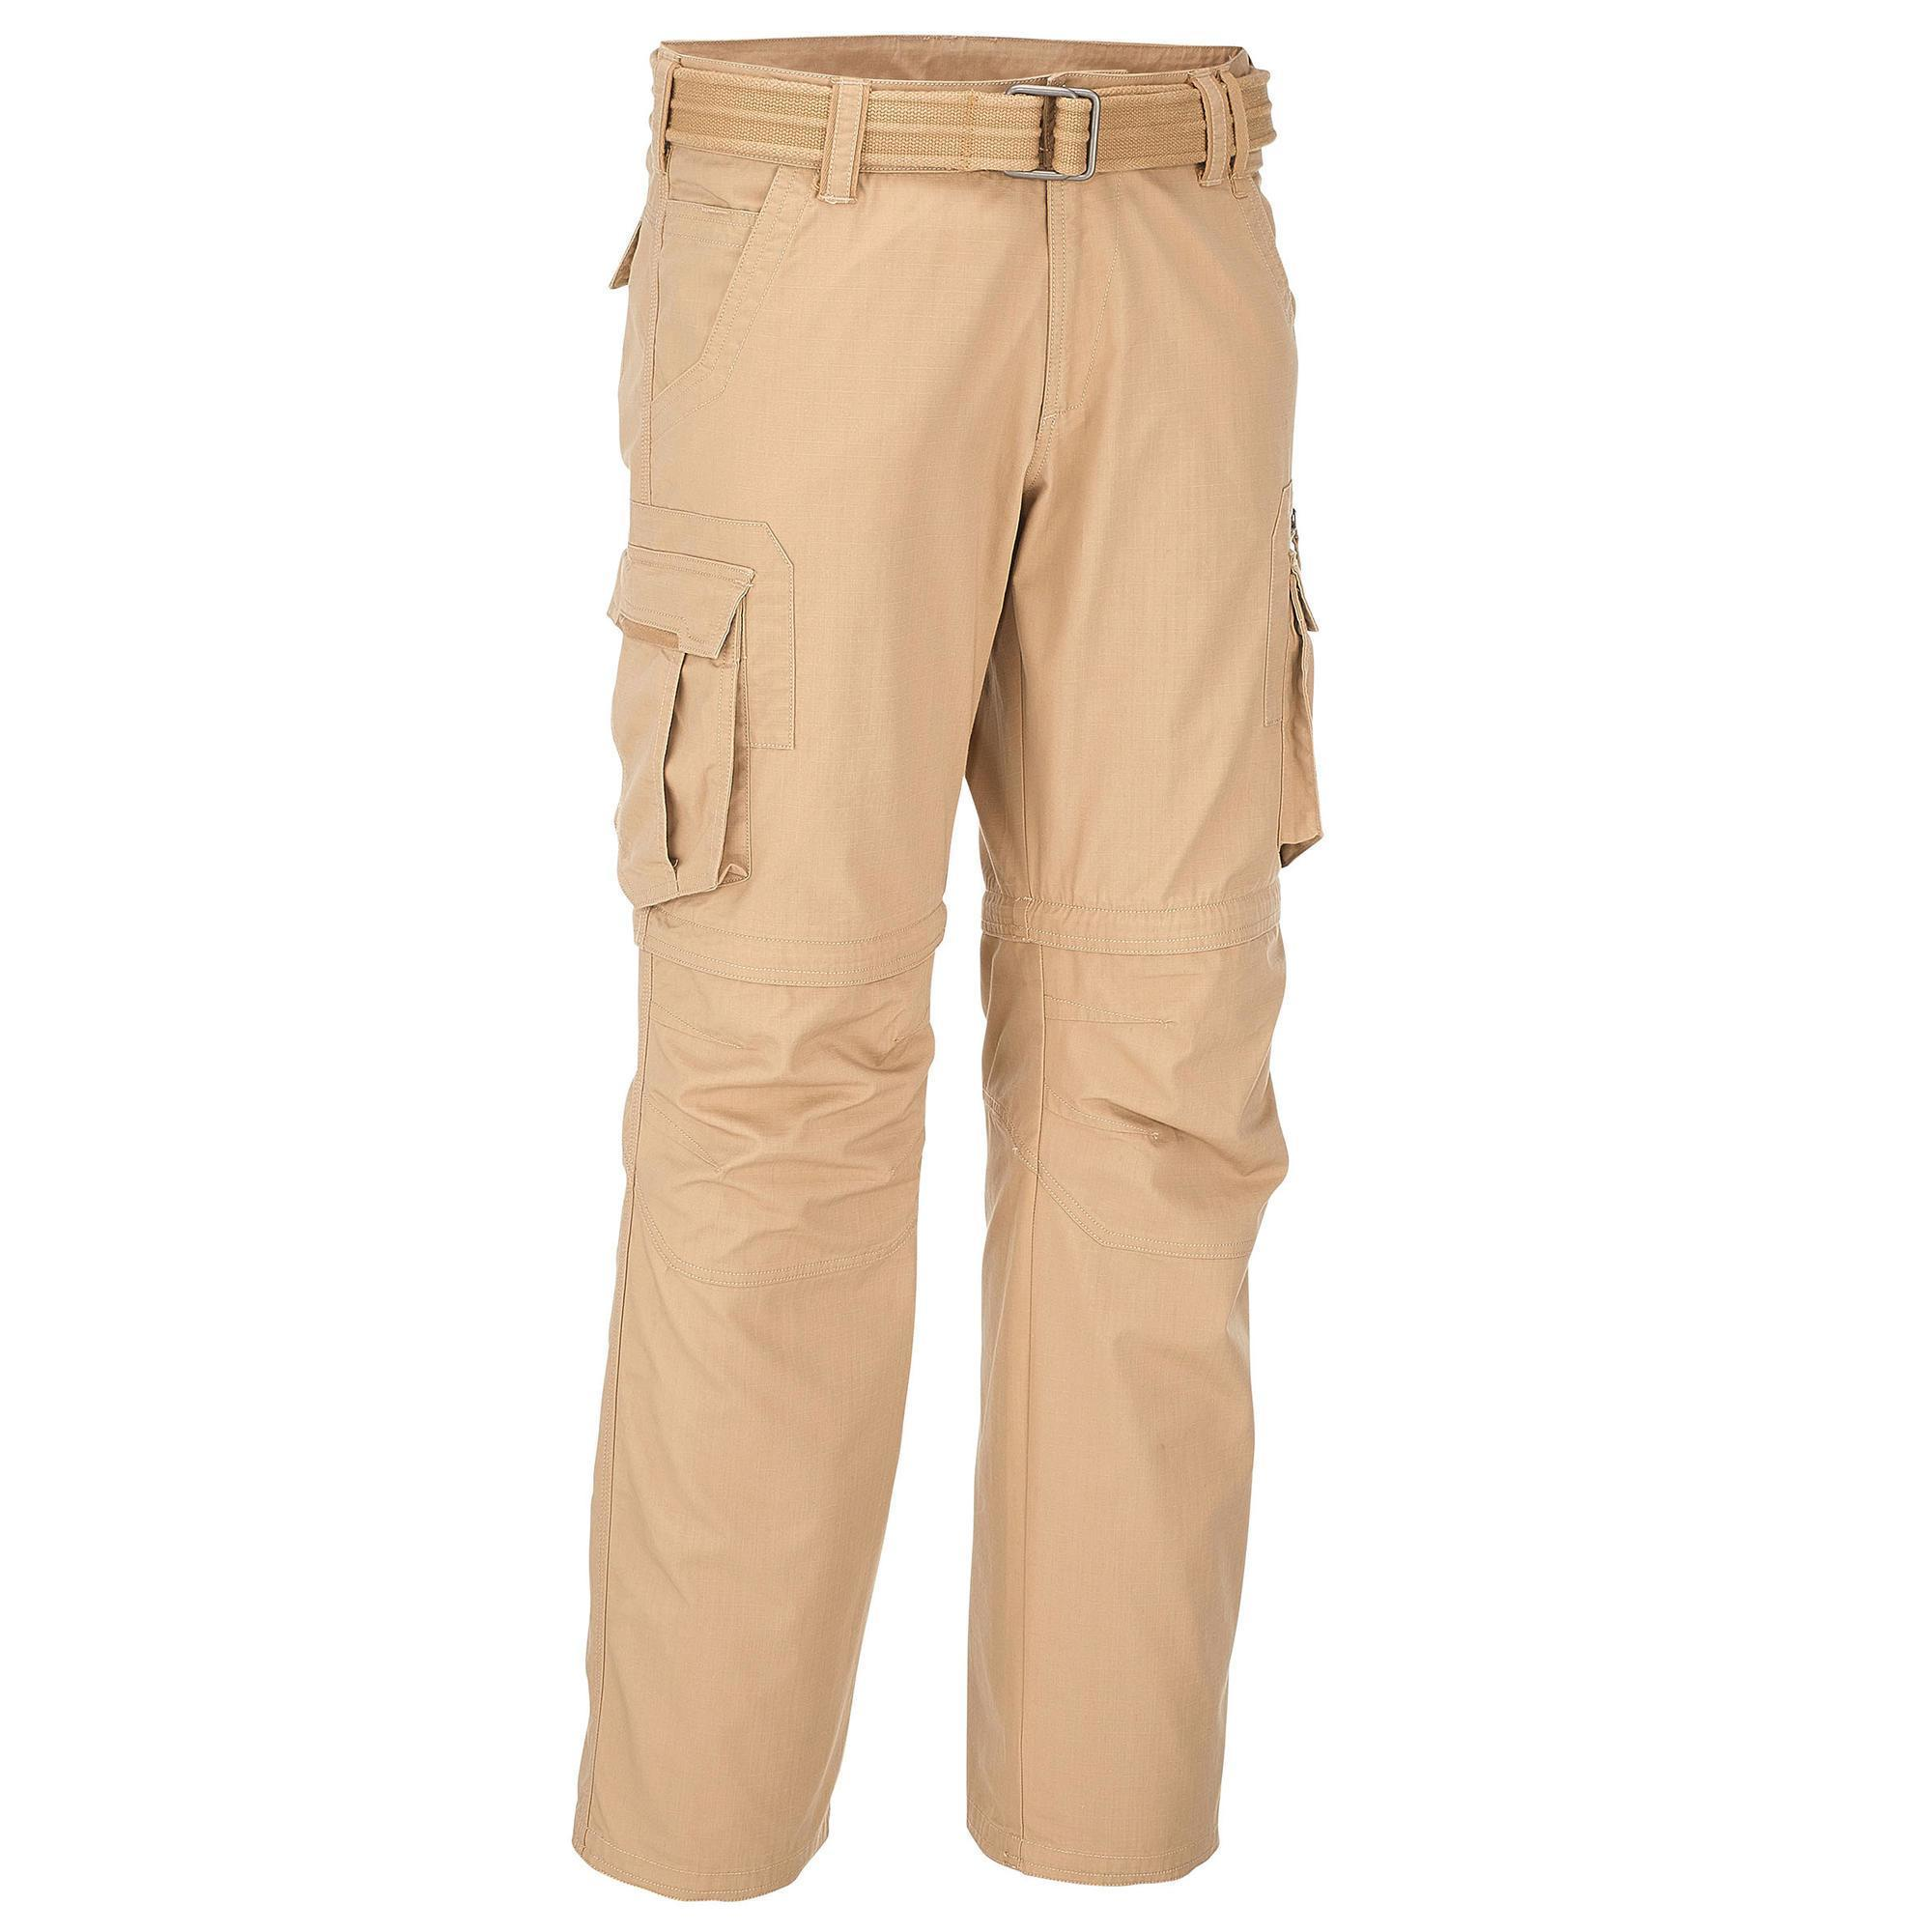 Travel 100 Men's Zip-Off Trousers